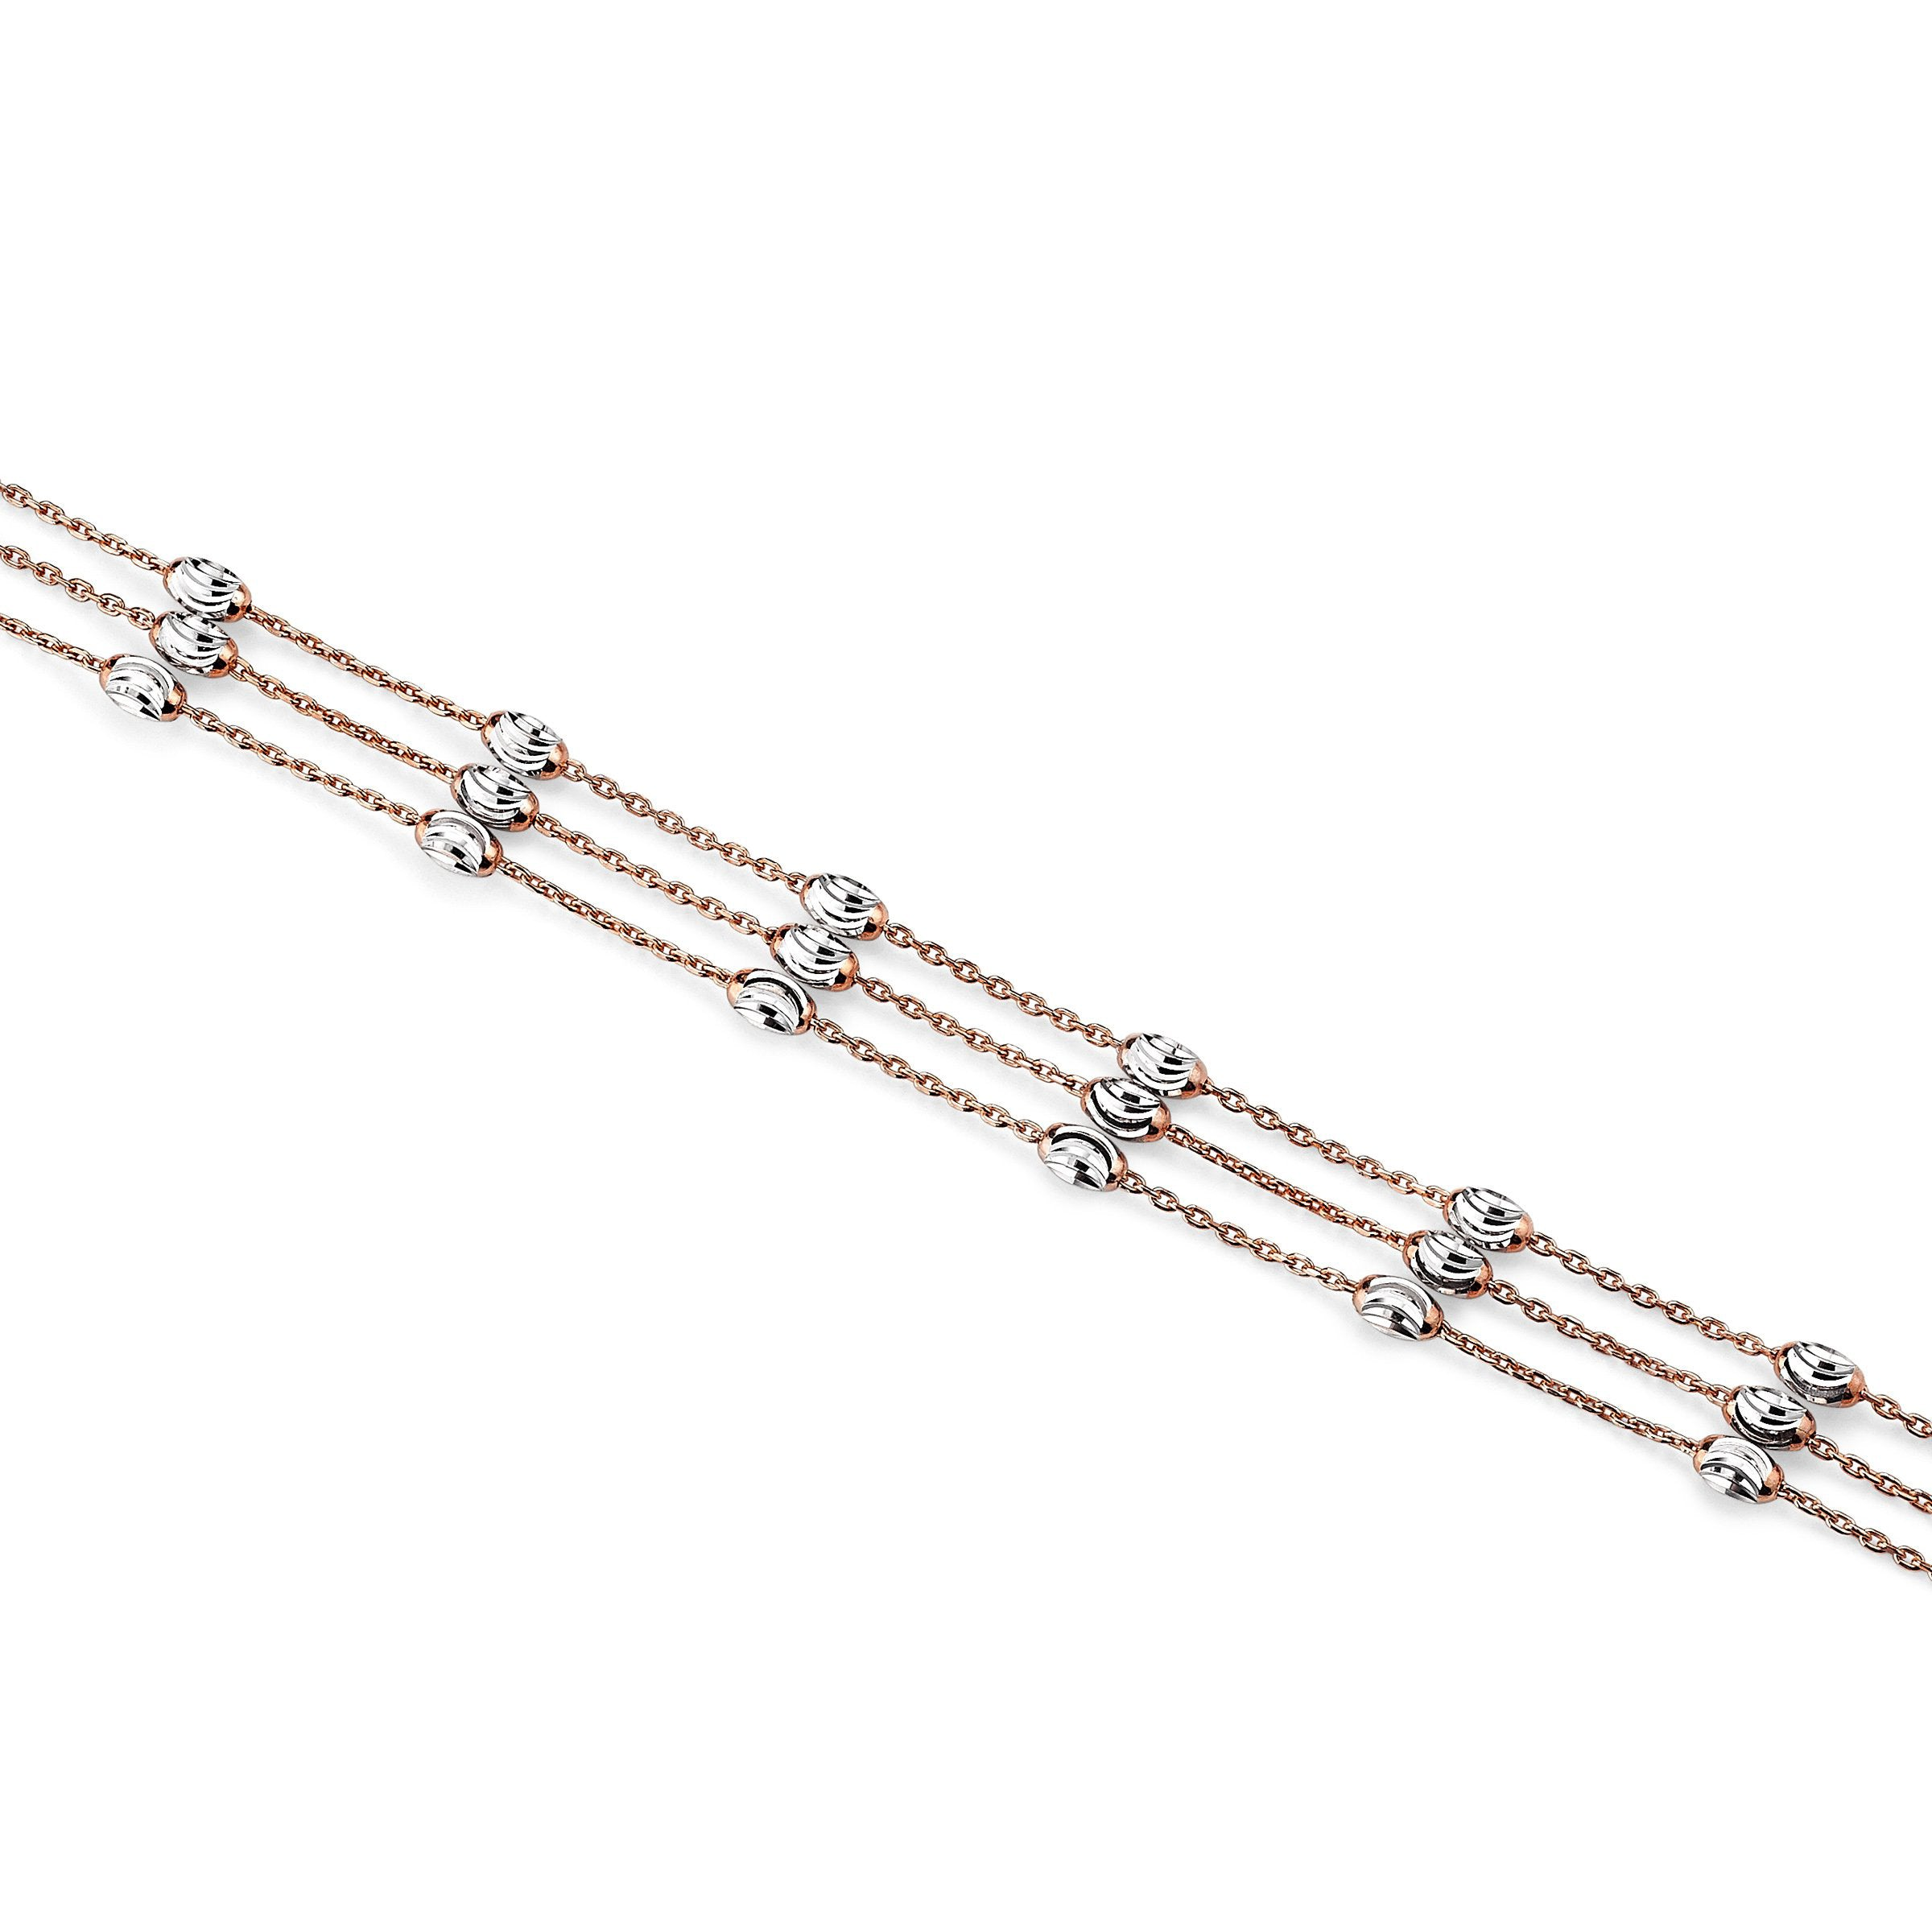 Three Strand Bead Bracelet, Sterling with 18K Rose Gold Plating